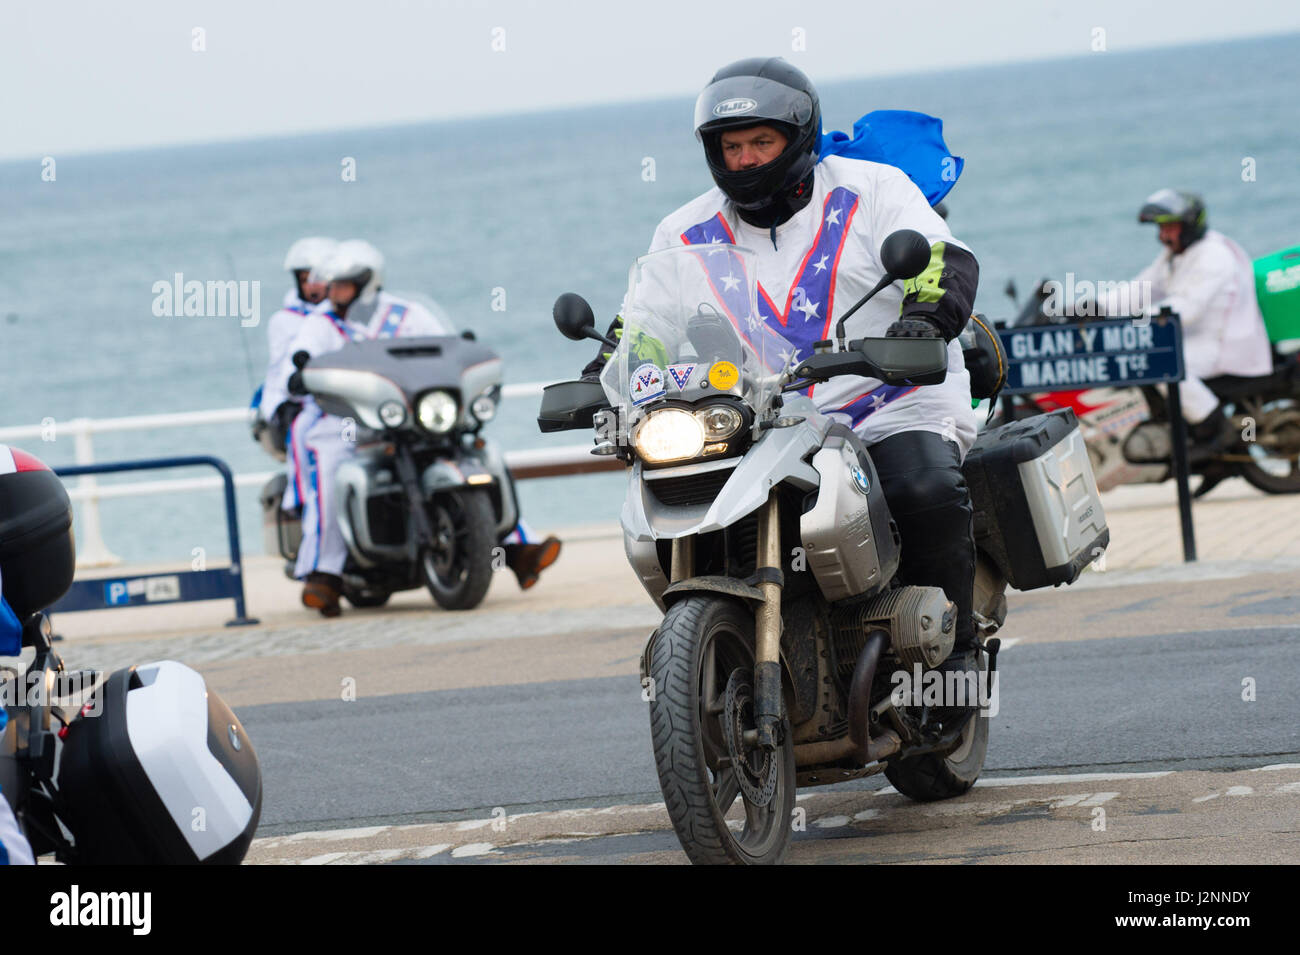 Aberystwyth Wales Uk Sunday 30 April 2017 Motor Bikers From The Stock Photo Royalty Free Image